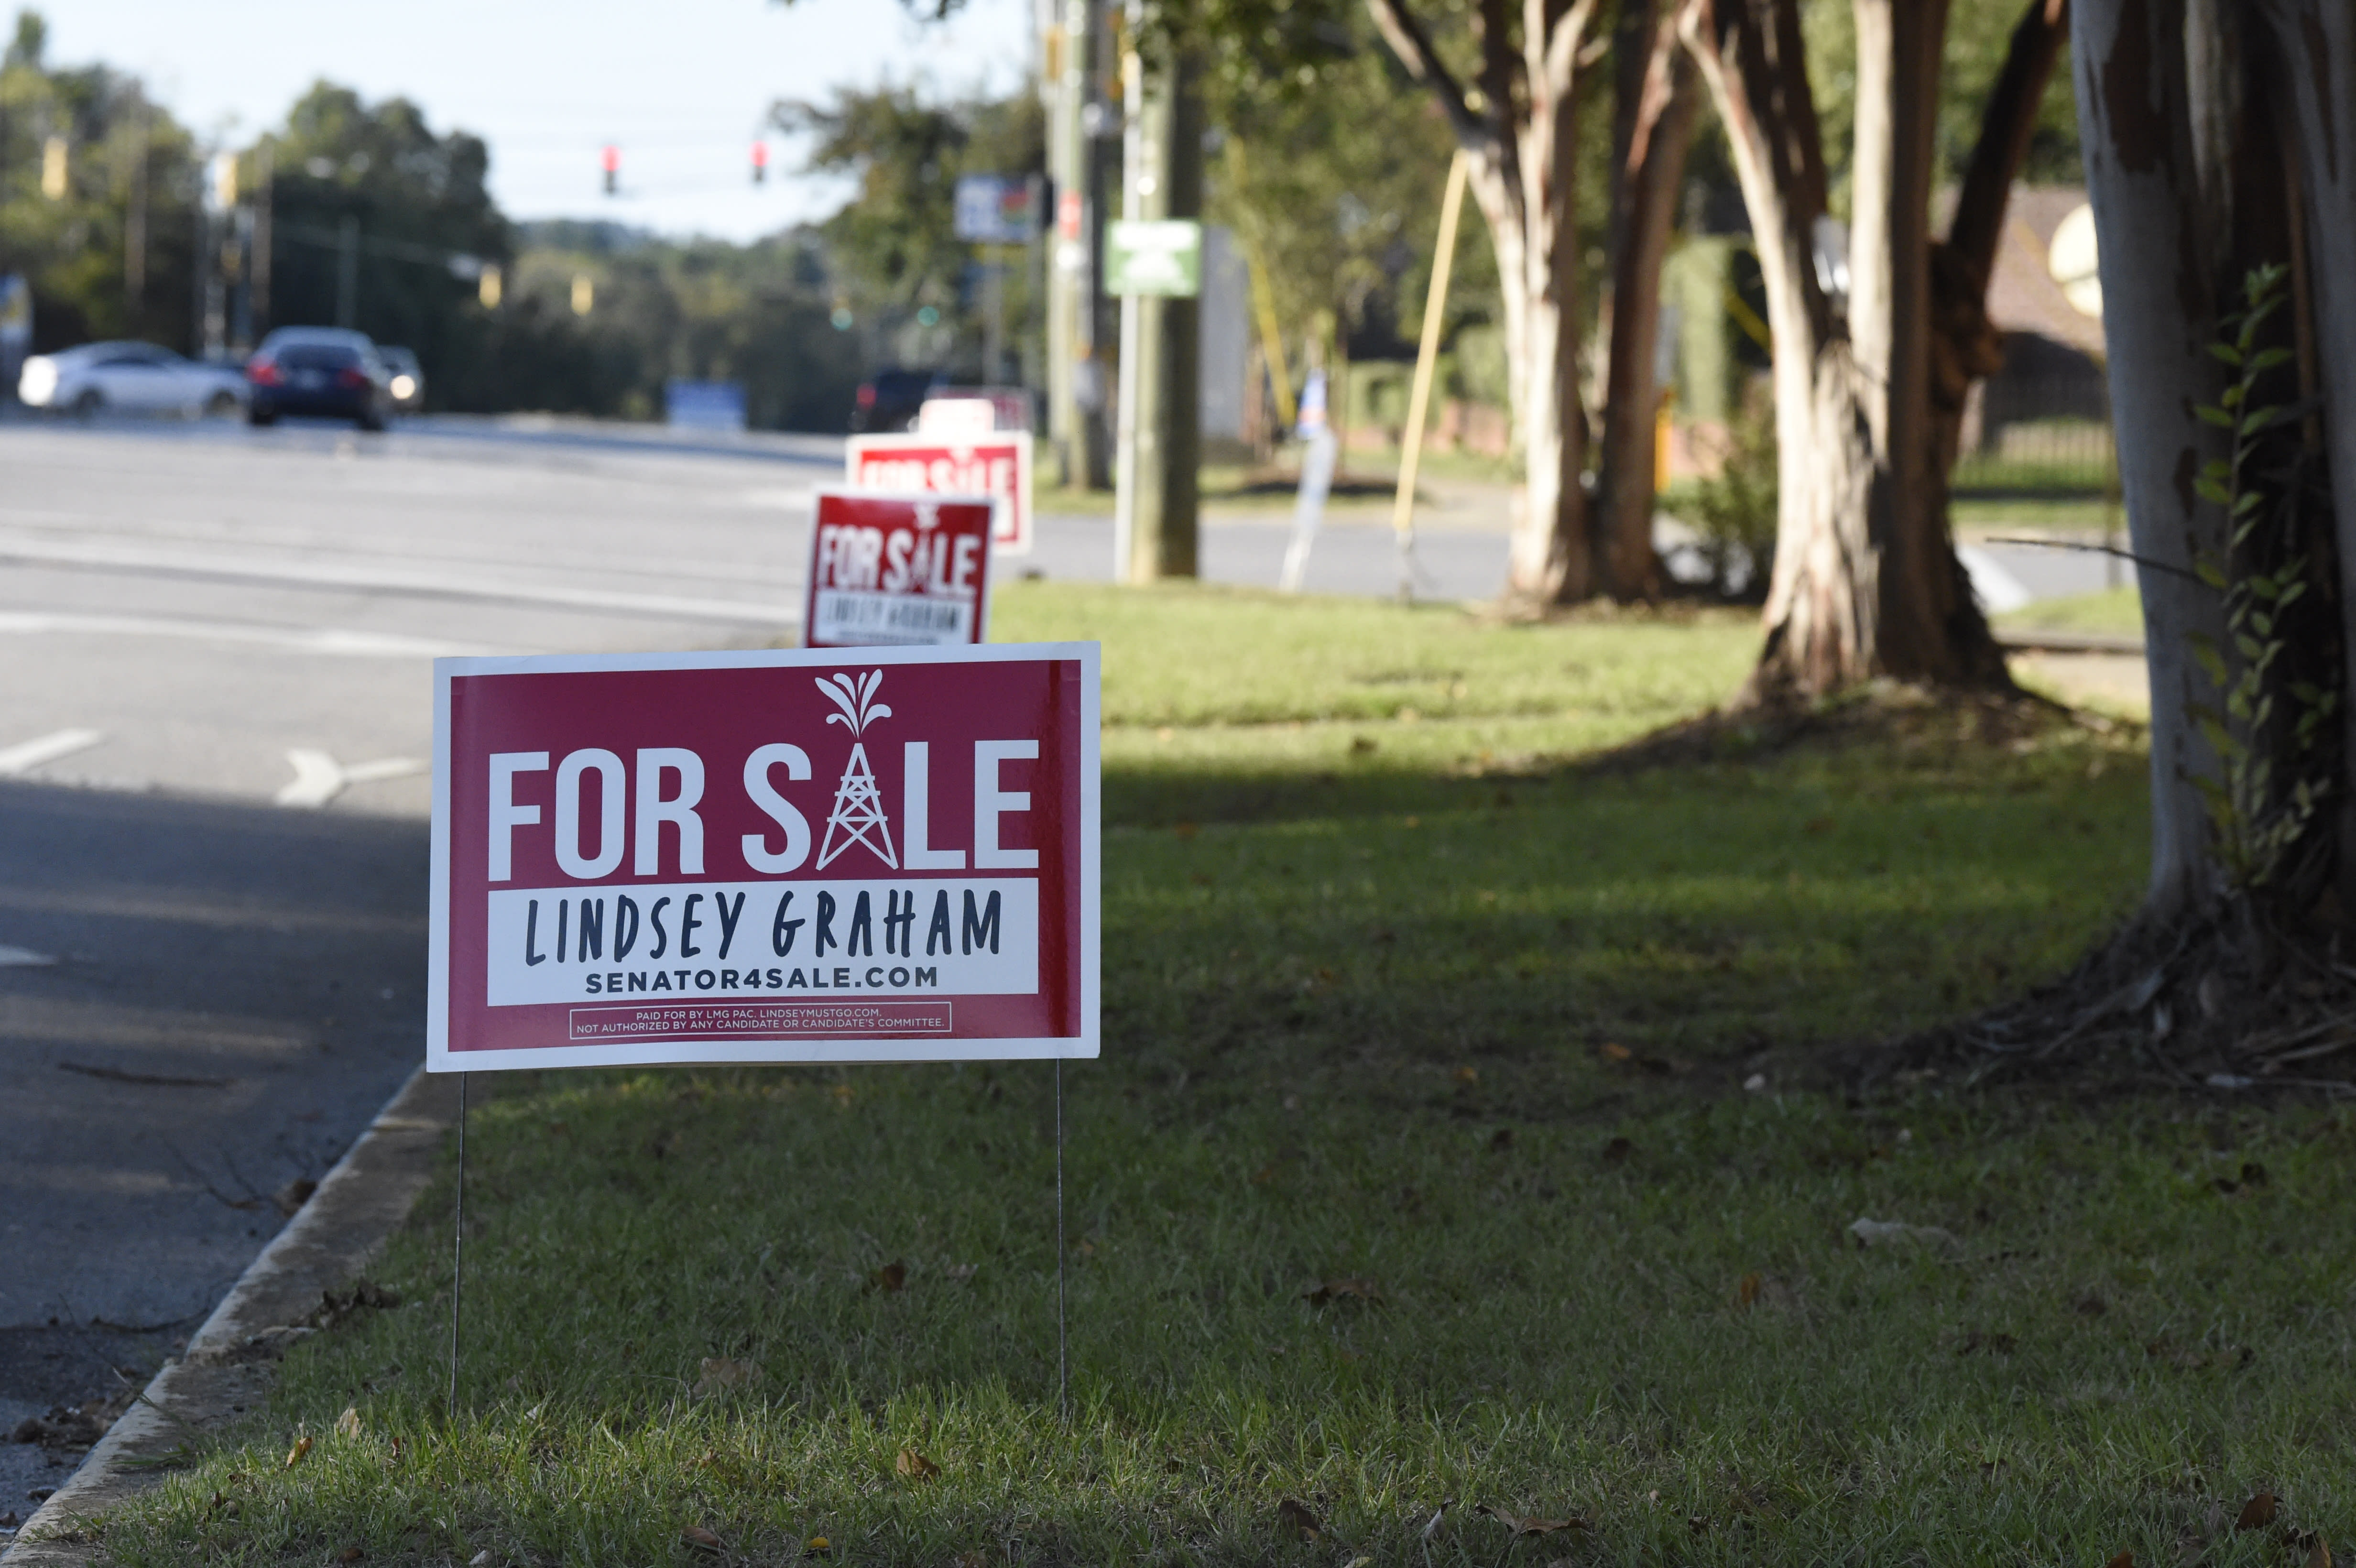 A sign paid for by a political action committee supporting Jaime Harrison, the Democrat challenging U.S. Sen. Lindsey Graham, is placed outside the venue where the two candidates were to meet for their first debate at Allen University, Saturday, Oct. 3, 2020, in Columbia, S.C. (AP Photo/Meg Kinnard)